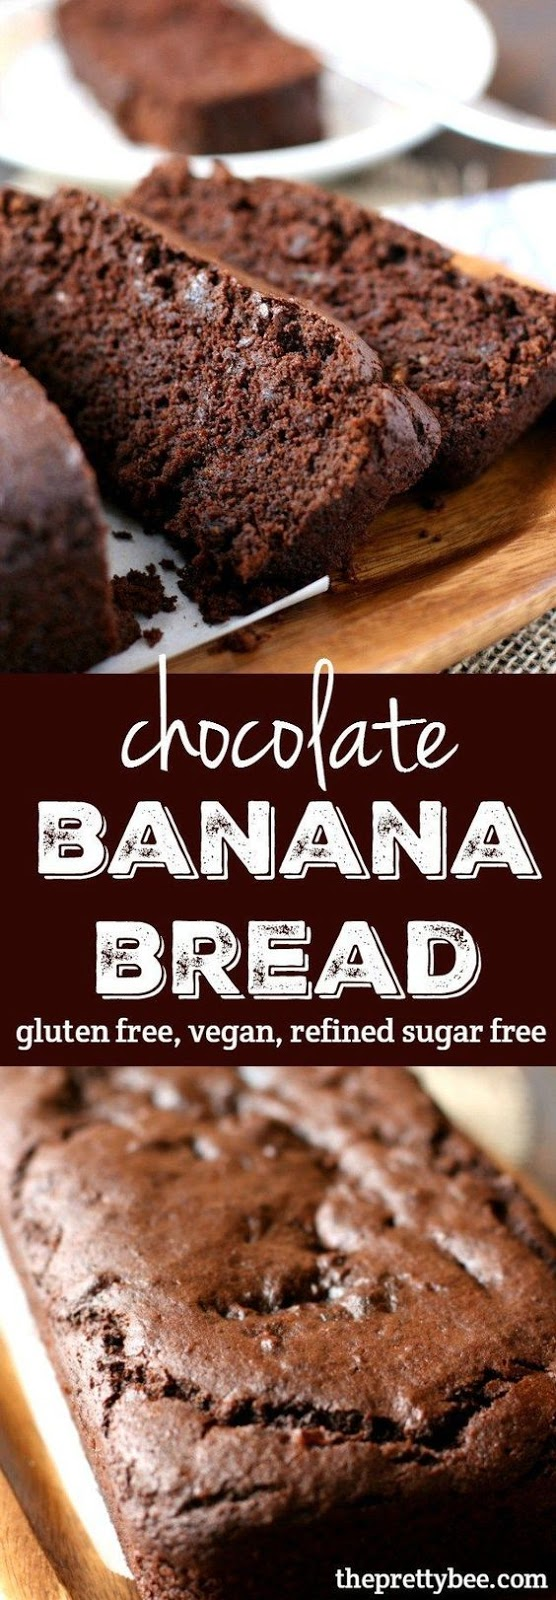 ★★★★☆ 2261 ratings | Chocolate Banana Bread (Gluten Free, Vegan, Refined Sugar Free)  #HEALTHYFOOD #EASYRECIPES #DINNER #LAUCH #DELICIOUS #EASY #HOLIDAYS #RECIPE #DESSERTS #SPECIALDIET #WORLDCUISINE #CAKE #APPETIZERS #HEALTHYRECIPES #DRINKS #COOKINGMETHOD #ITALIANRECIPES #MEAT #VEGANRECIPES #COOKIES #PASTA #FRUIT #SALAD #SOUPAPPETIZERS #NONALCOHOLICDRINKS #MEALPLANNING #VEGETABLES #SOUP #PASTRY #CHOCOLATE #DAIRY #ALCOHOLICDRINKS #BULGURSALAD #BAKING #SNACKS #BEEFRECIPES #MEATAPPETIZERS #MEXICANRECIPES #BREAD #ASIANRECIPES #SEAFOODAPPETIZERS #MUFFINS #BREAKFASTANDBRUNCH #CONDIMENTS #CUPCAKES #CHEESE #CHICKENRECIPES #PIE #COFFEE #NOBAKEDESSERTS #HEALTHYSNACKS #SEAFOOD #GRAIN #LUNCHESDINNERS #MEXICAN #QUICKBREAD #LIQUOR